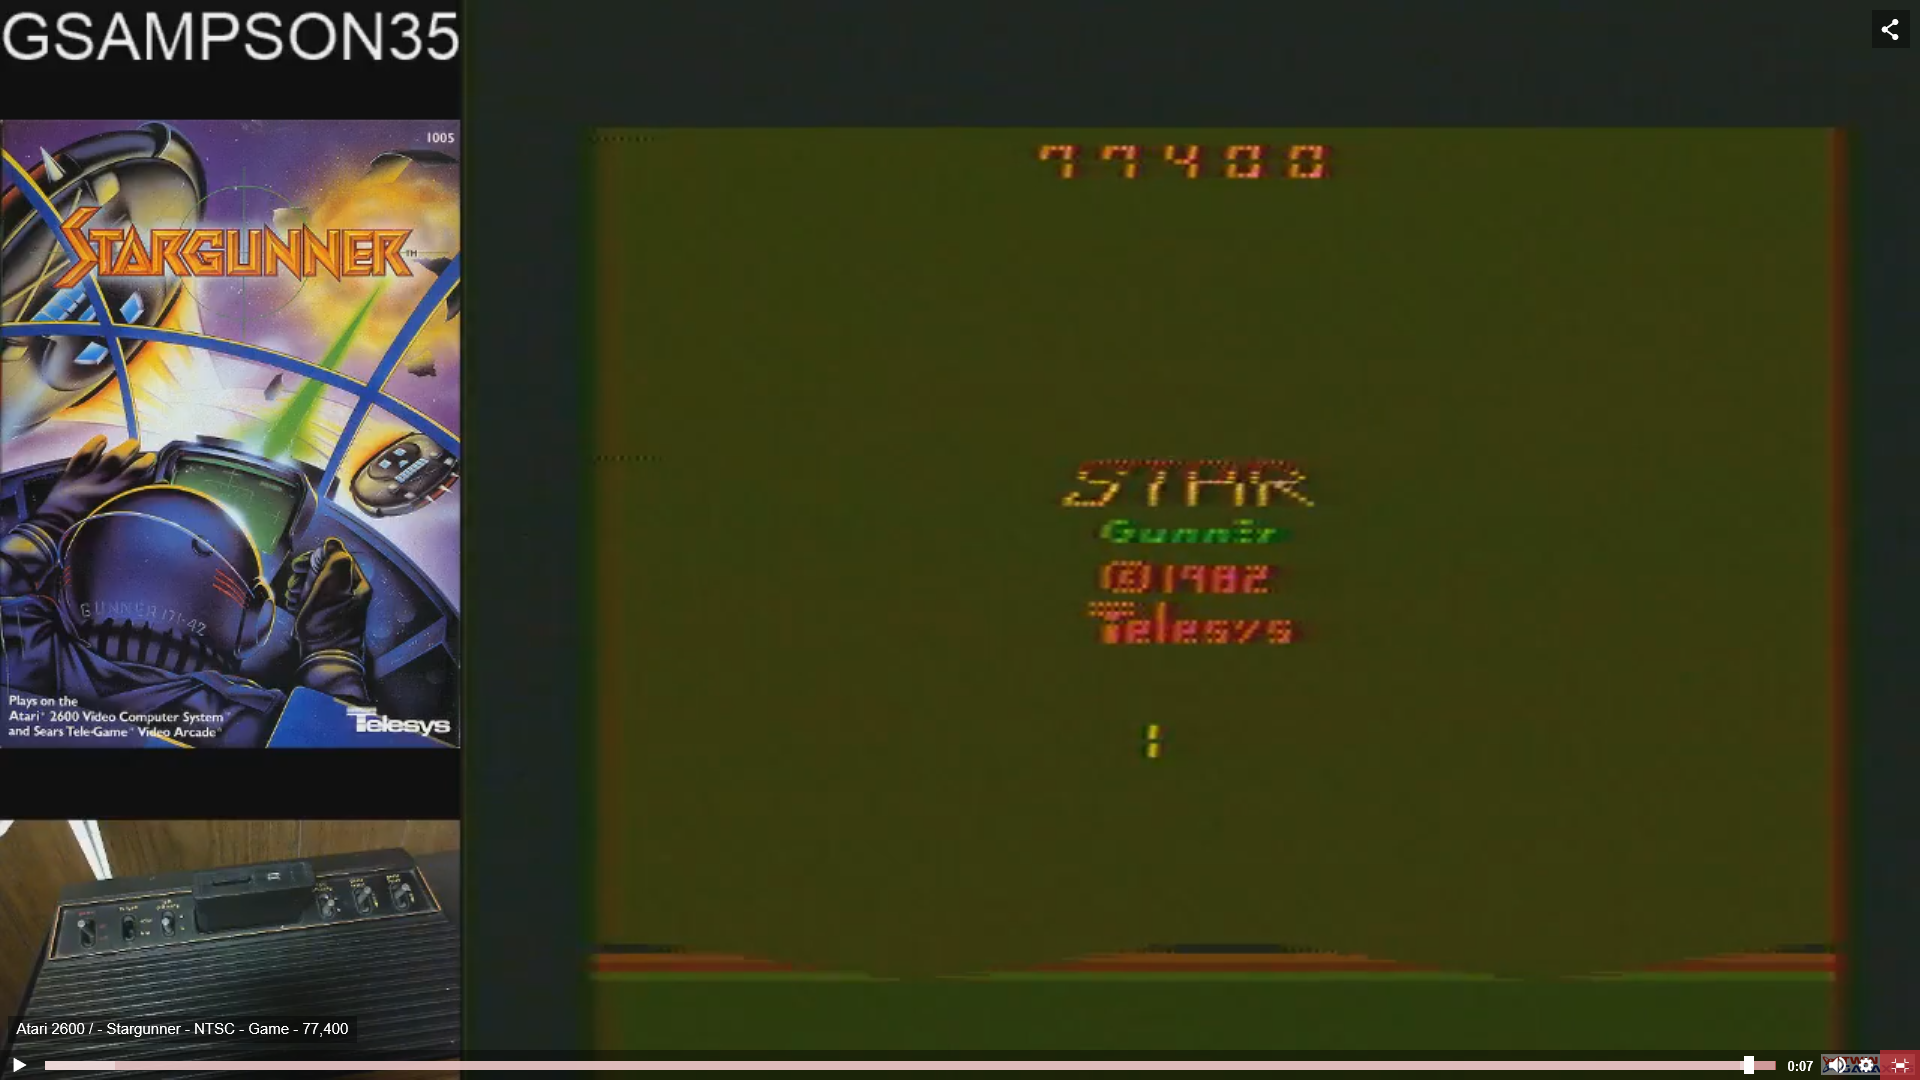 gsampson35: Stargunner (Atari 2600 Novice/B) 77,400 points on 2019-02-10 04:27:01